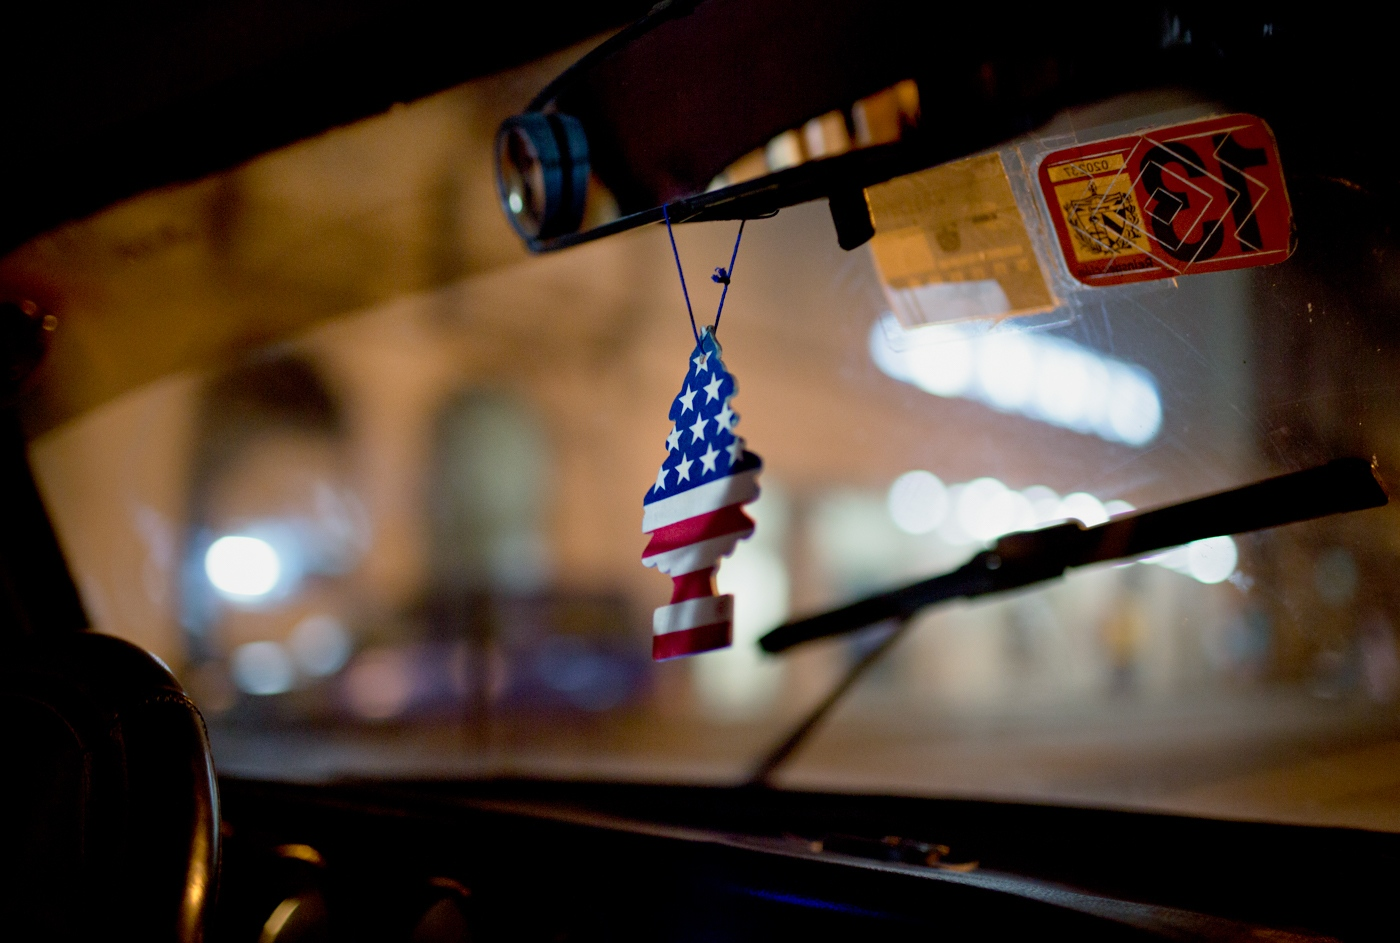 A taxi driver displays an air-freshener with the US flag on it. The Cubans are delighted at the relaxing of the political relations with the United States and generally have high hopes for their future.